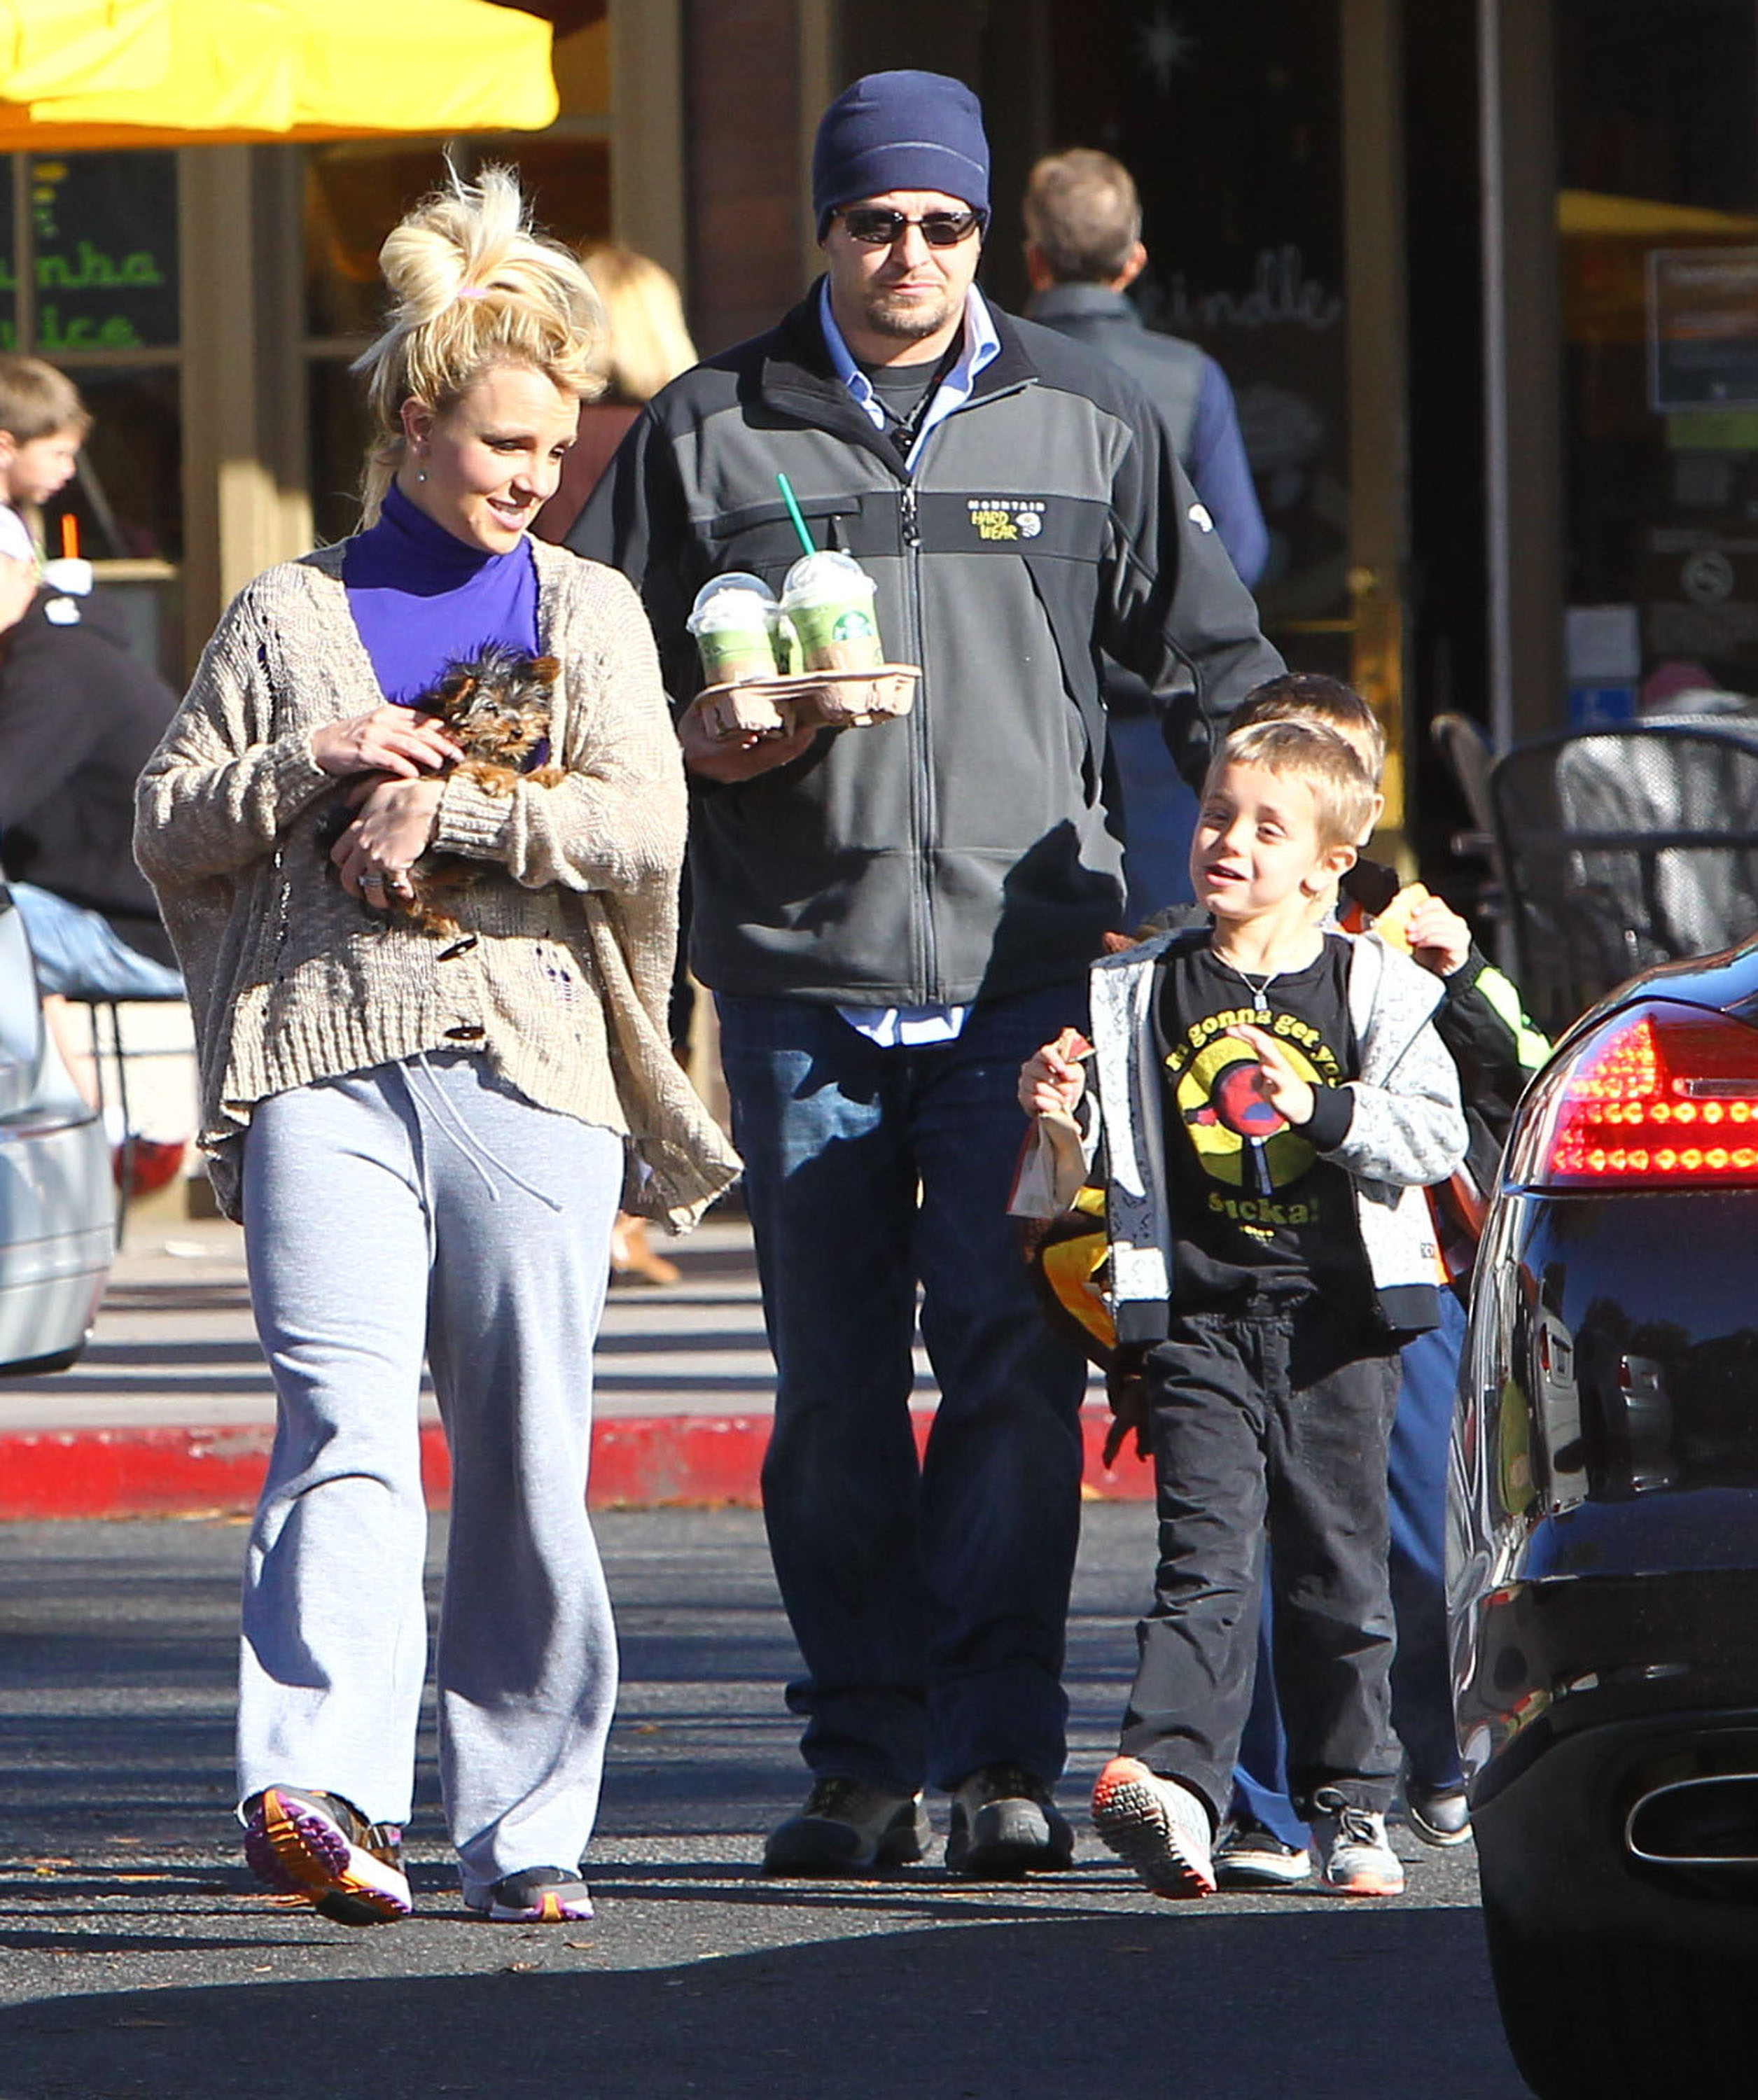 Britney Spears was joined by her sons on a Starbucks stop.